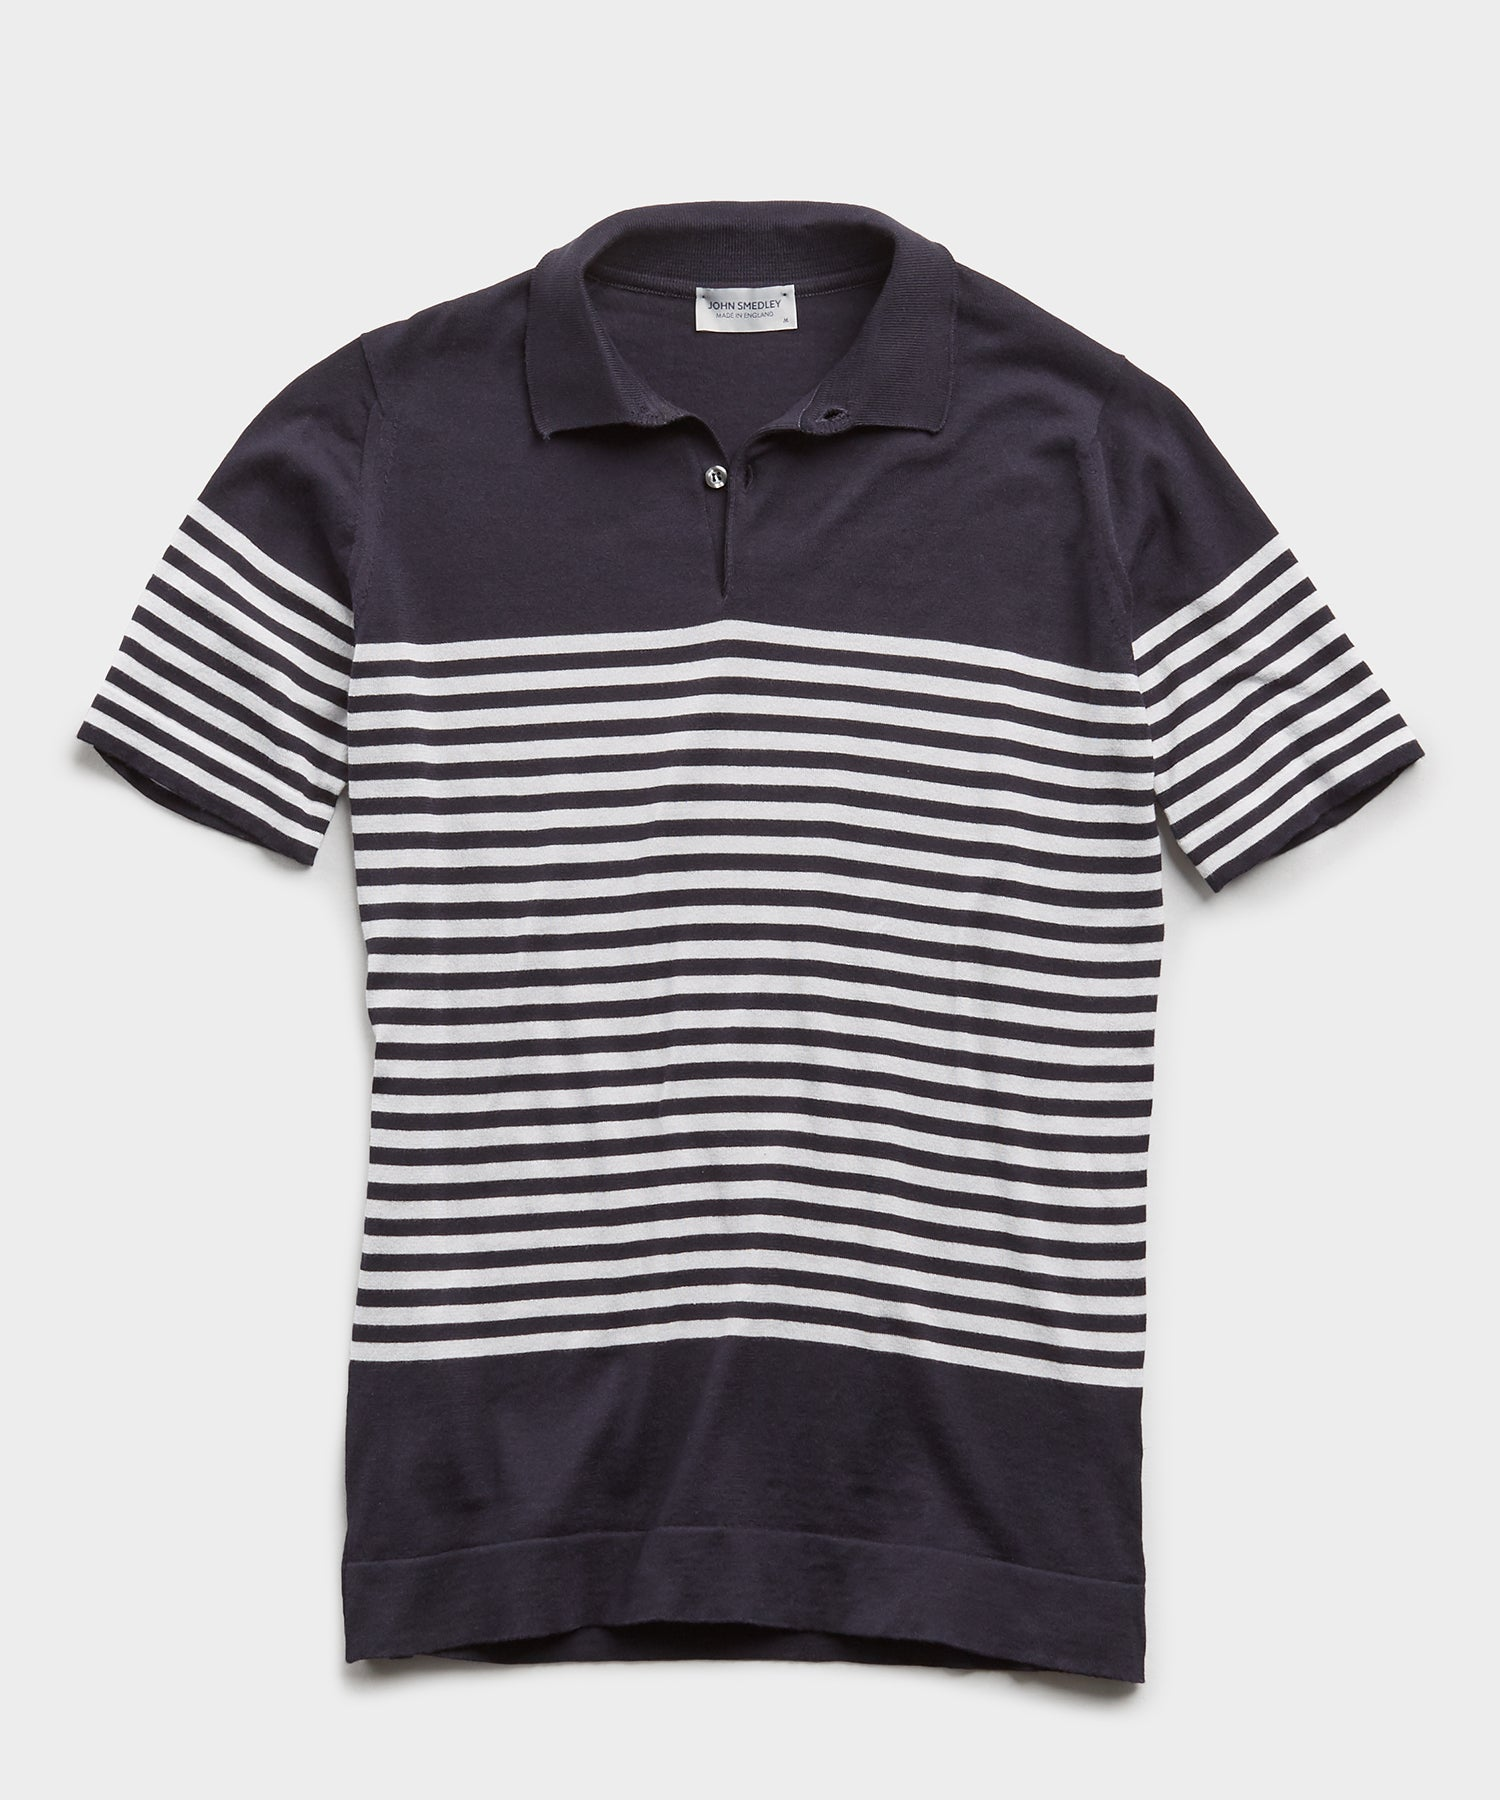 John Smedley Striped Sea Island Cotton Polo in Navy